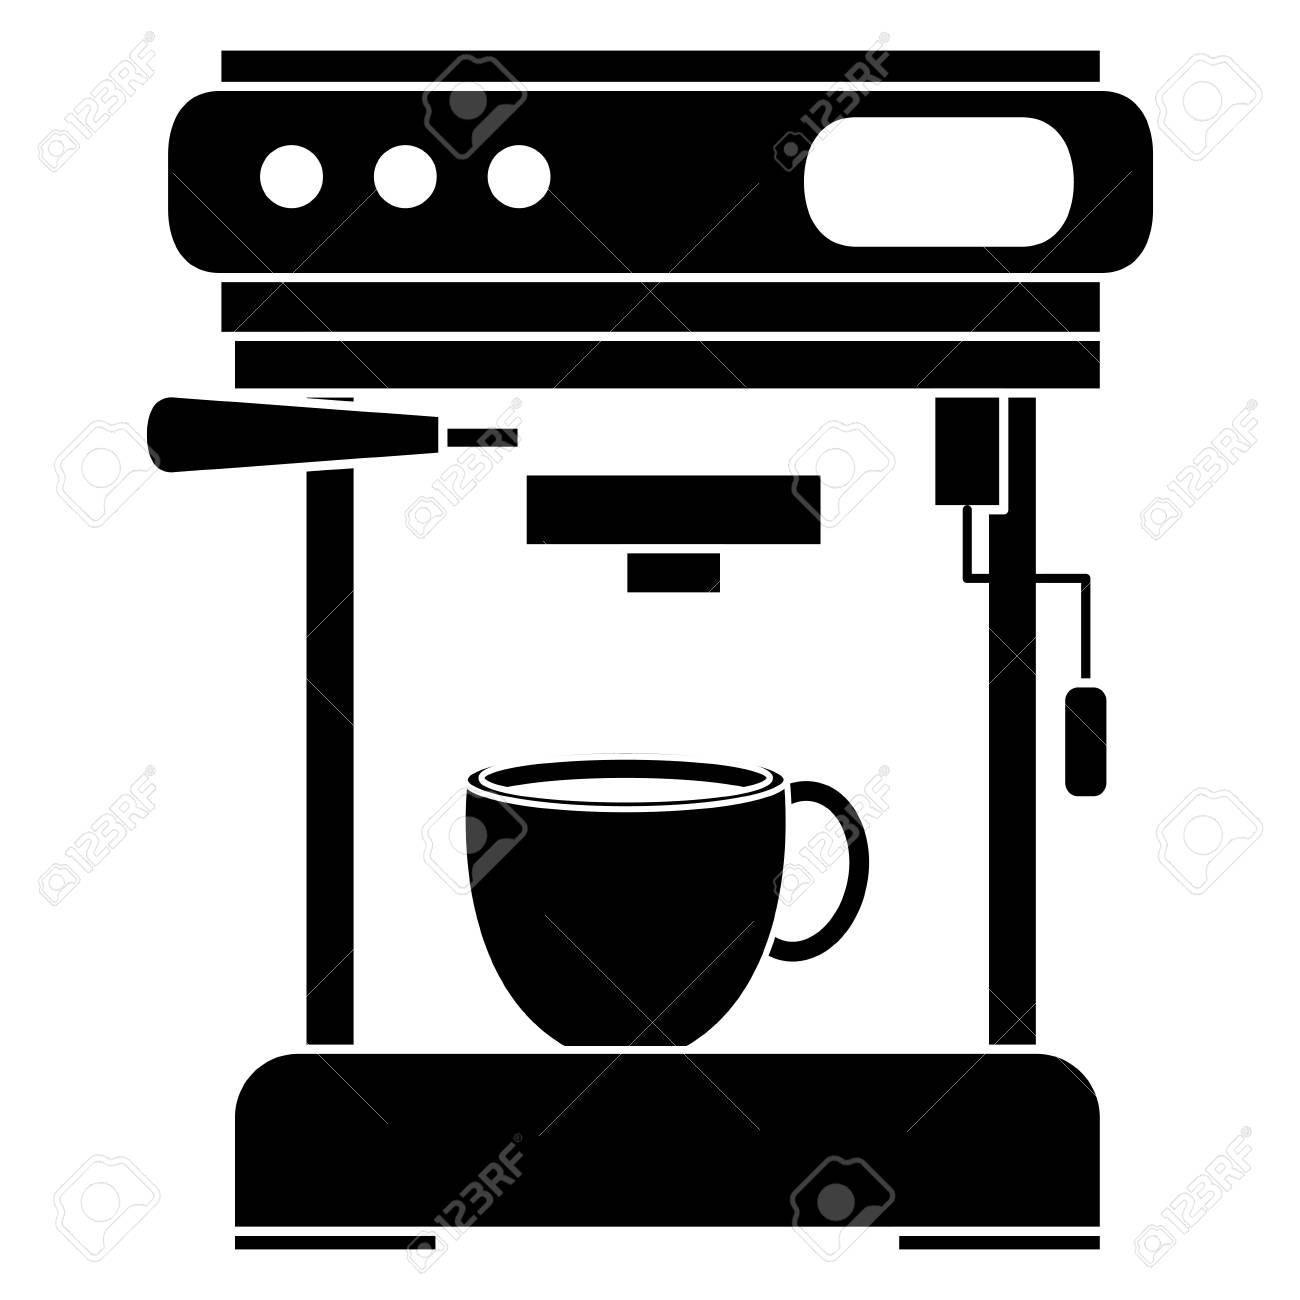 Coffee Machine Isolated Icon Vector Illustration Design Royalty Free Cliparts Vectors And Stock Illustration Image 94145264